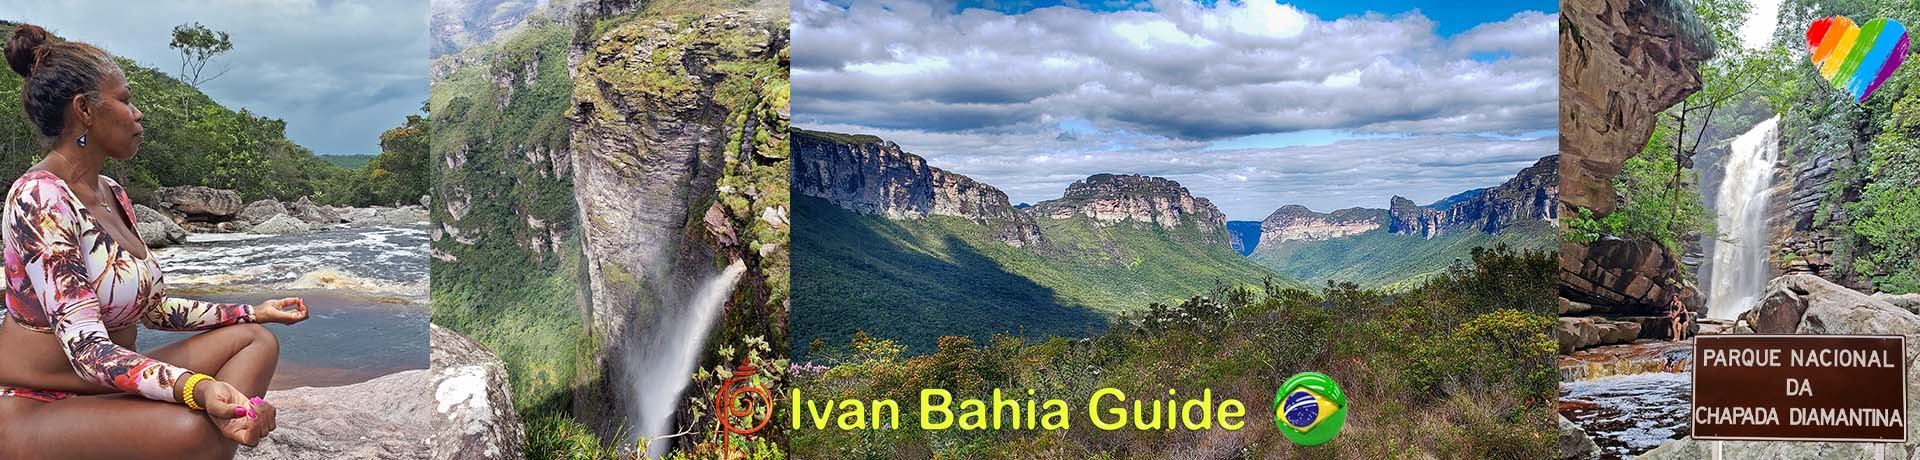 Ivan Bahia Guide - daytour from Salvador : Chapada Diamantina National Park in 1 day